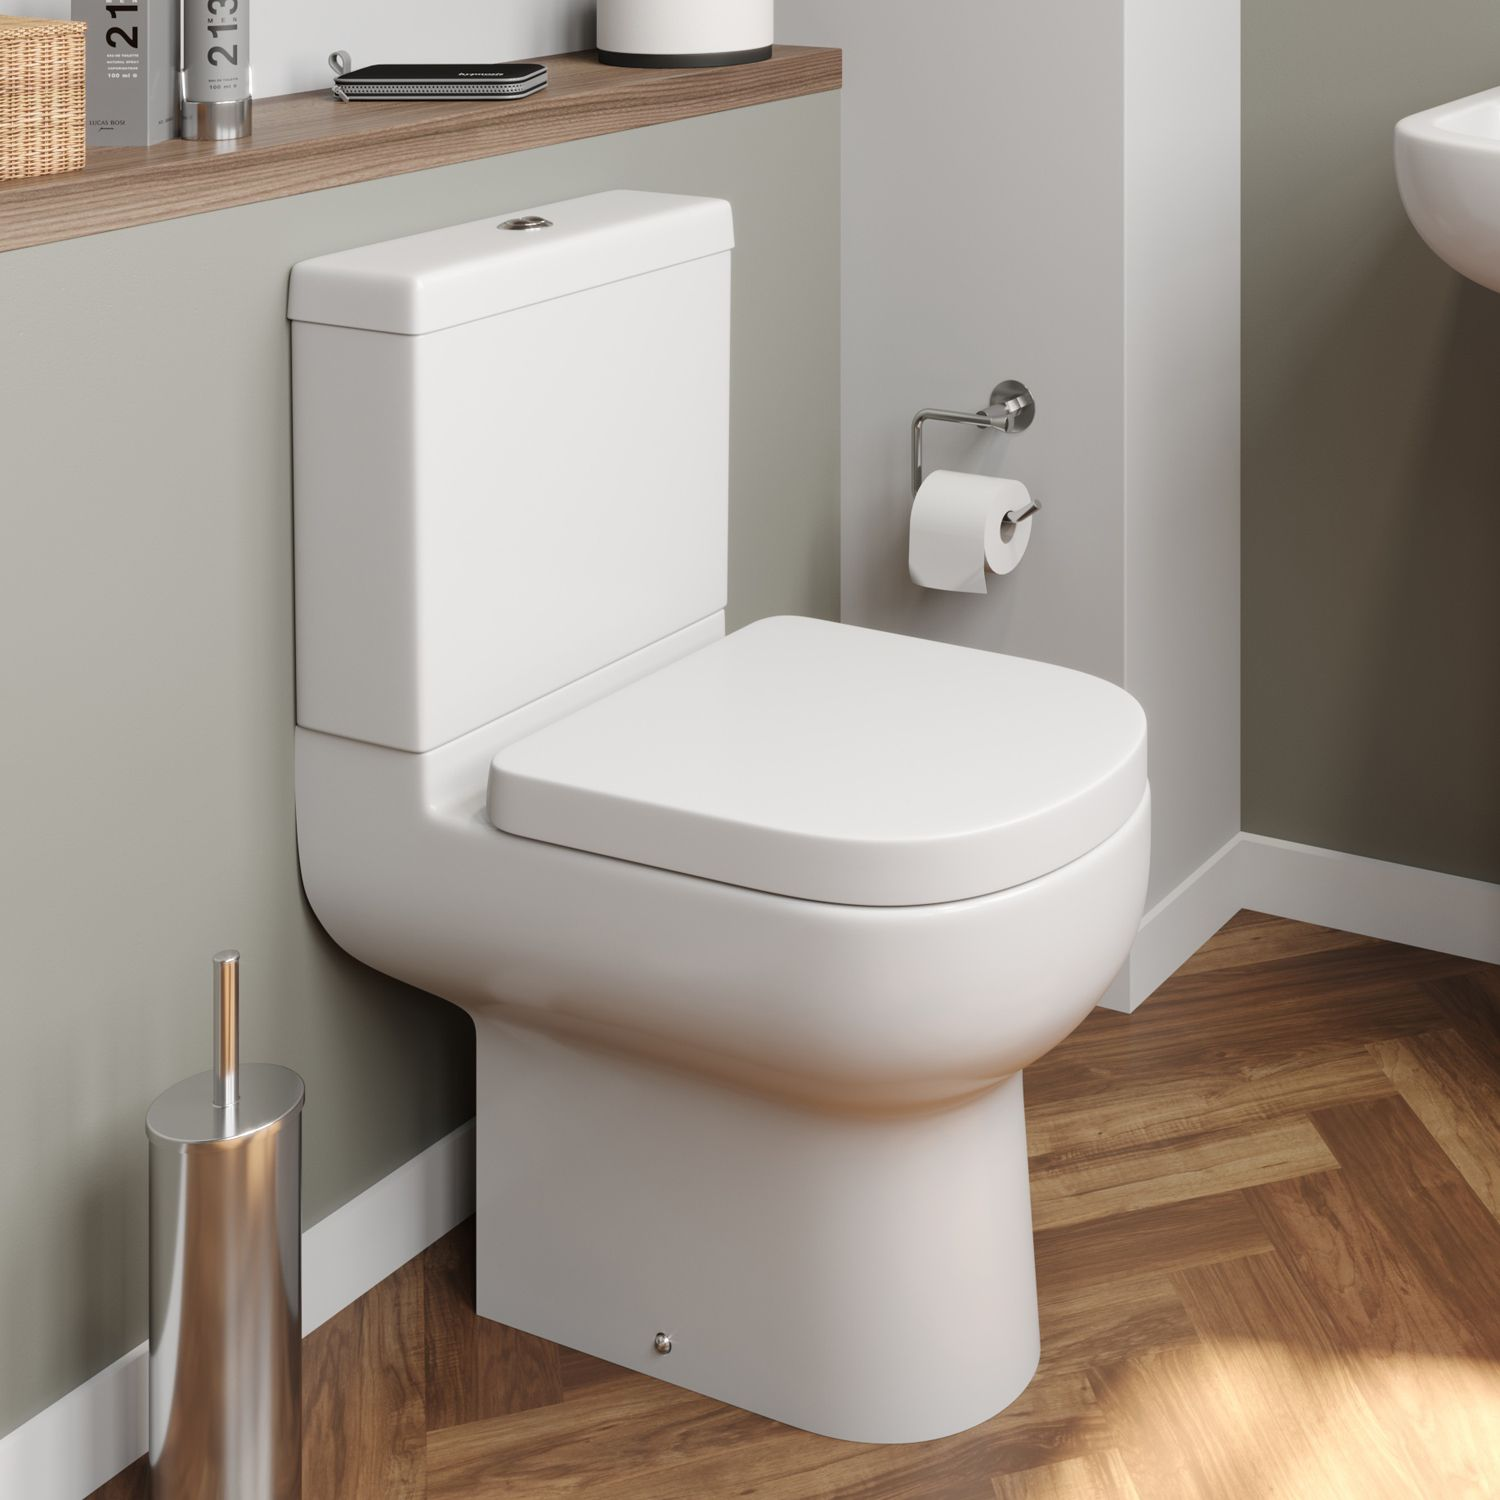 Affine Oceane Space Saving Toilet Space Saving Toilet Small Bathroom Suites Ideal Bathrooms